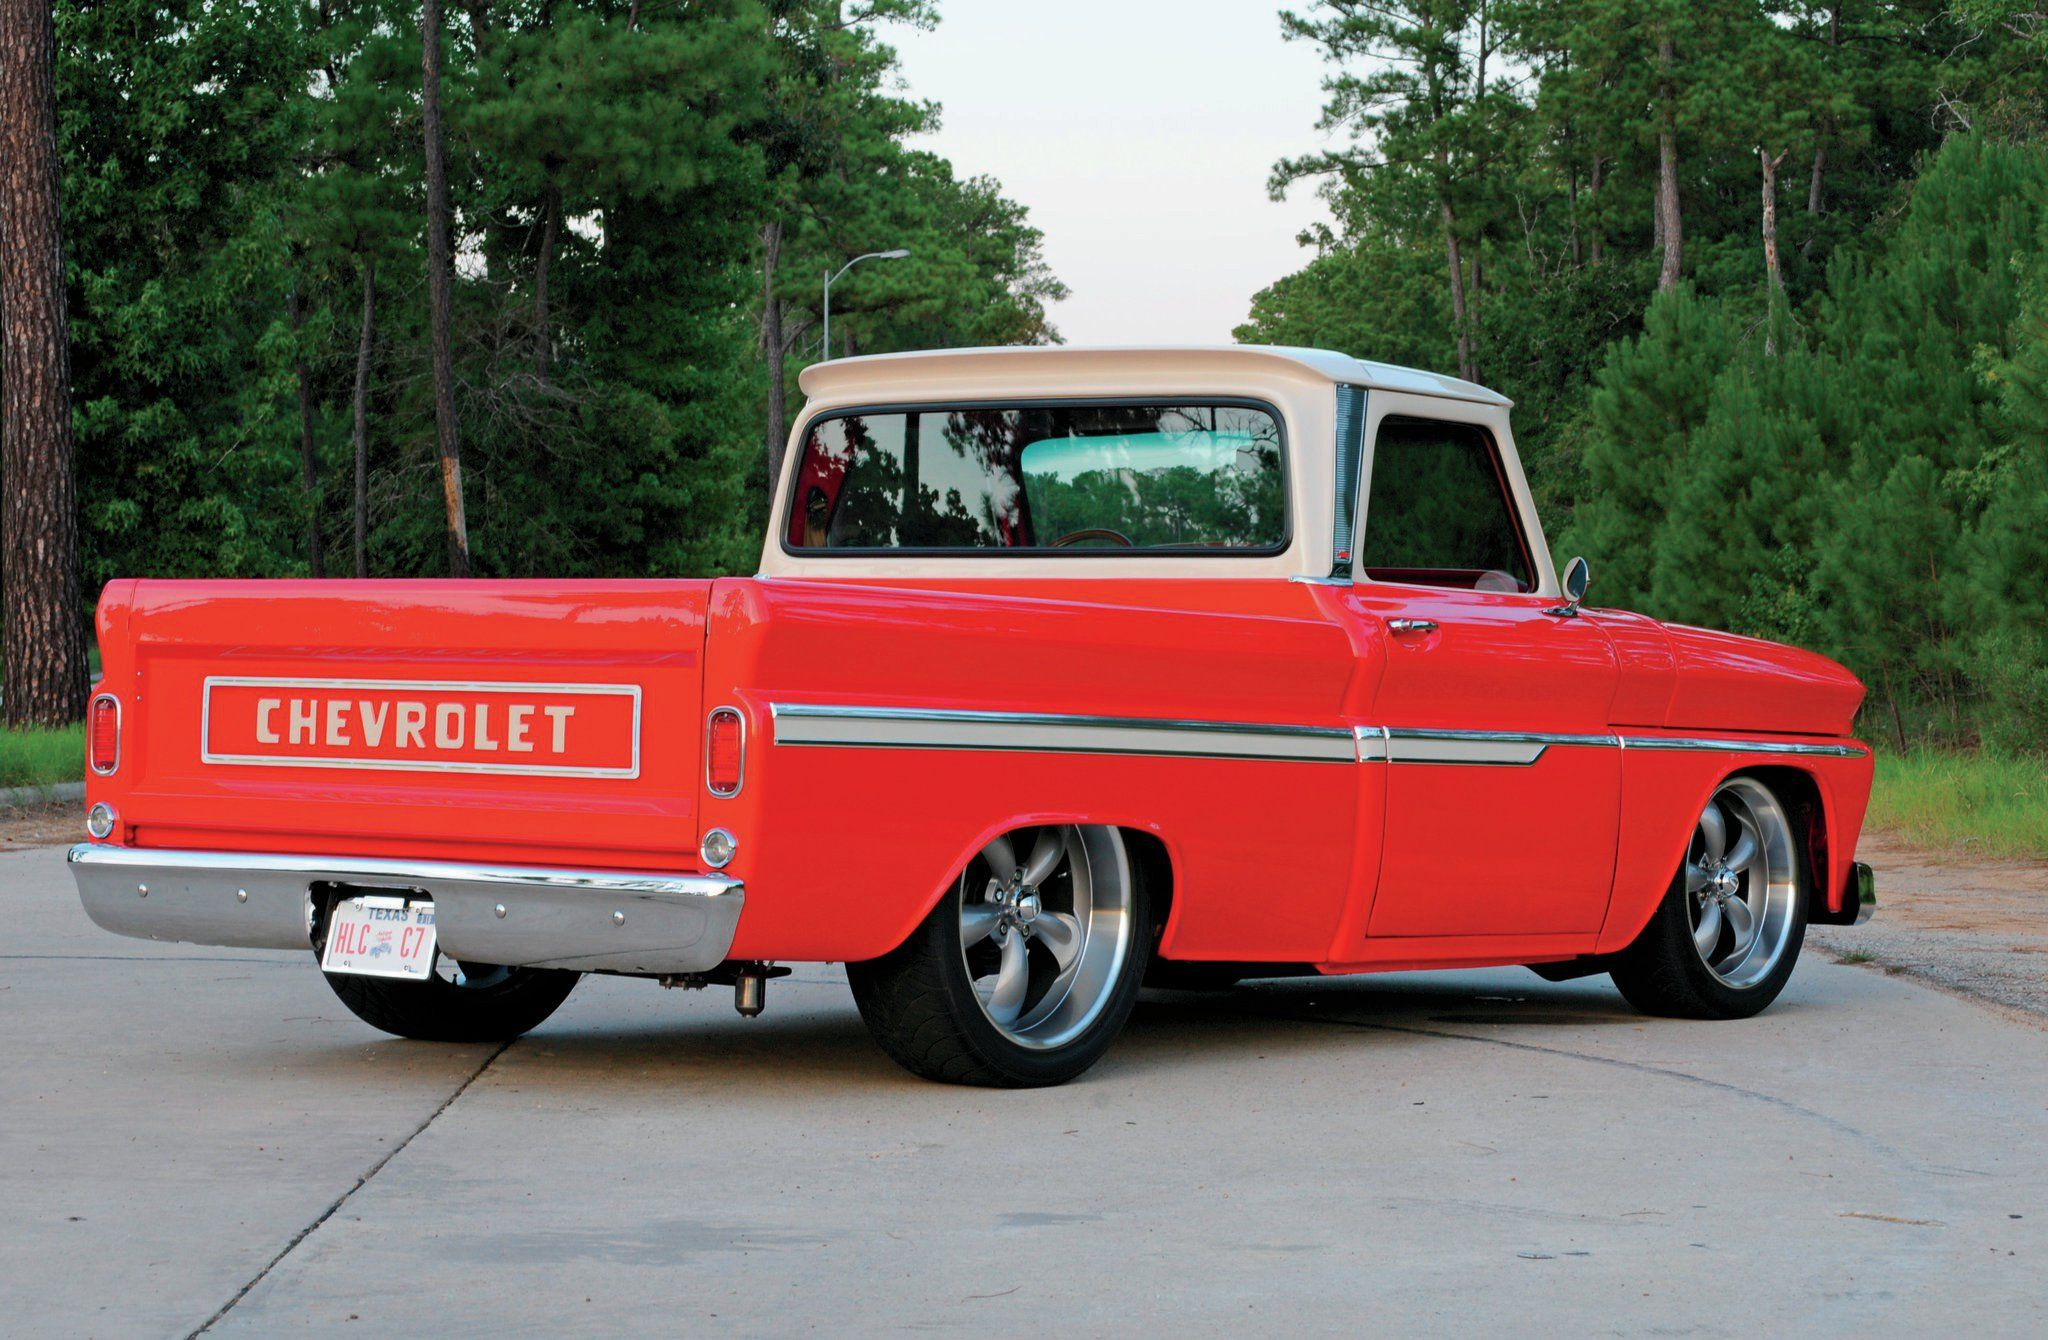 Ron malinowski purchased his 1965 chevy c10 after the fond memories of his first truck